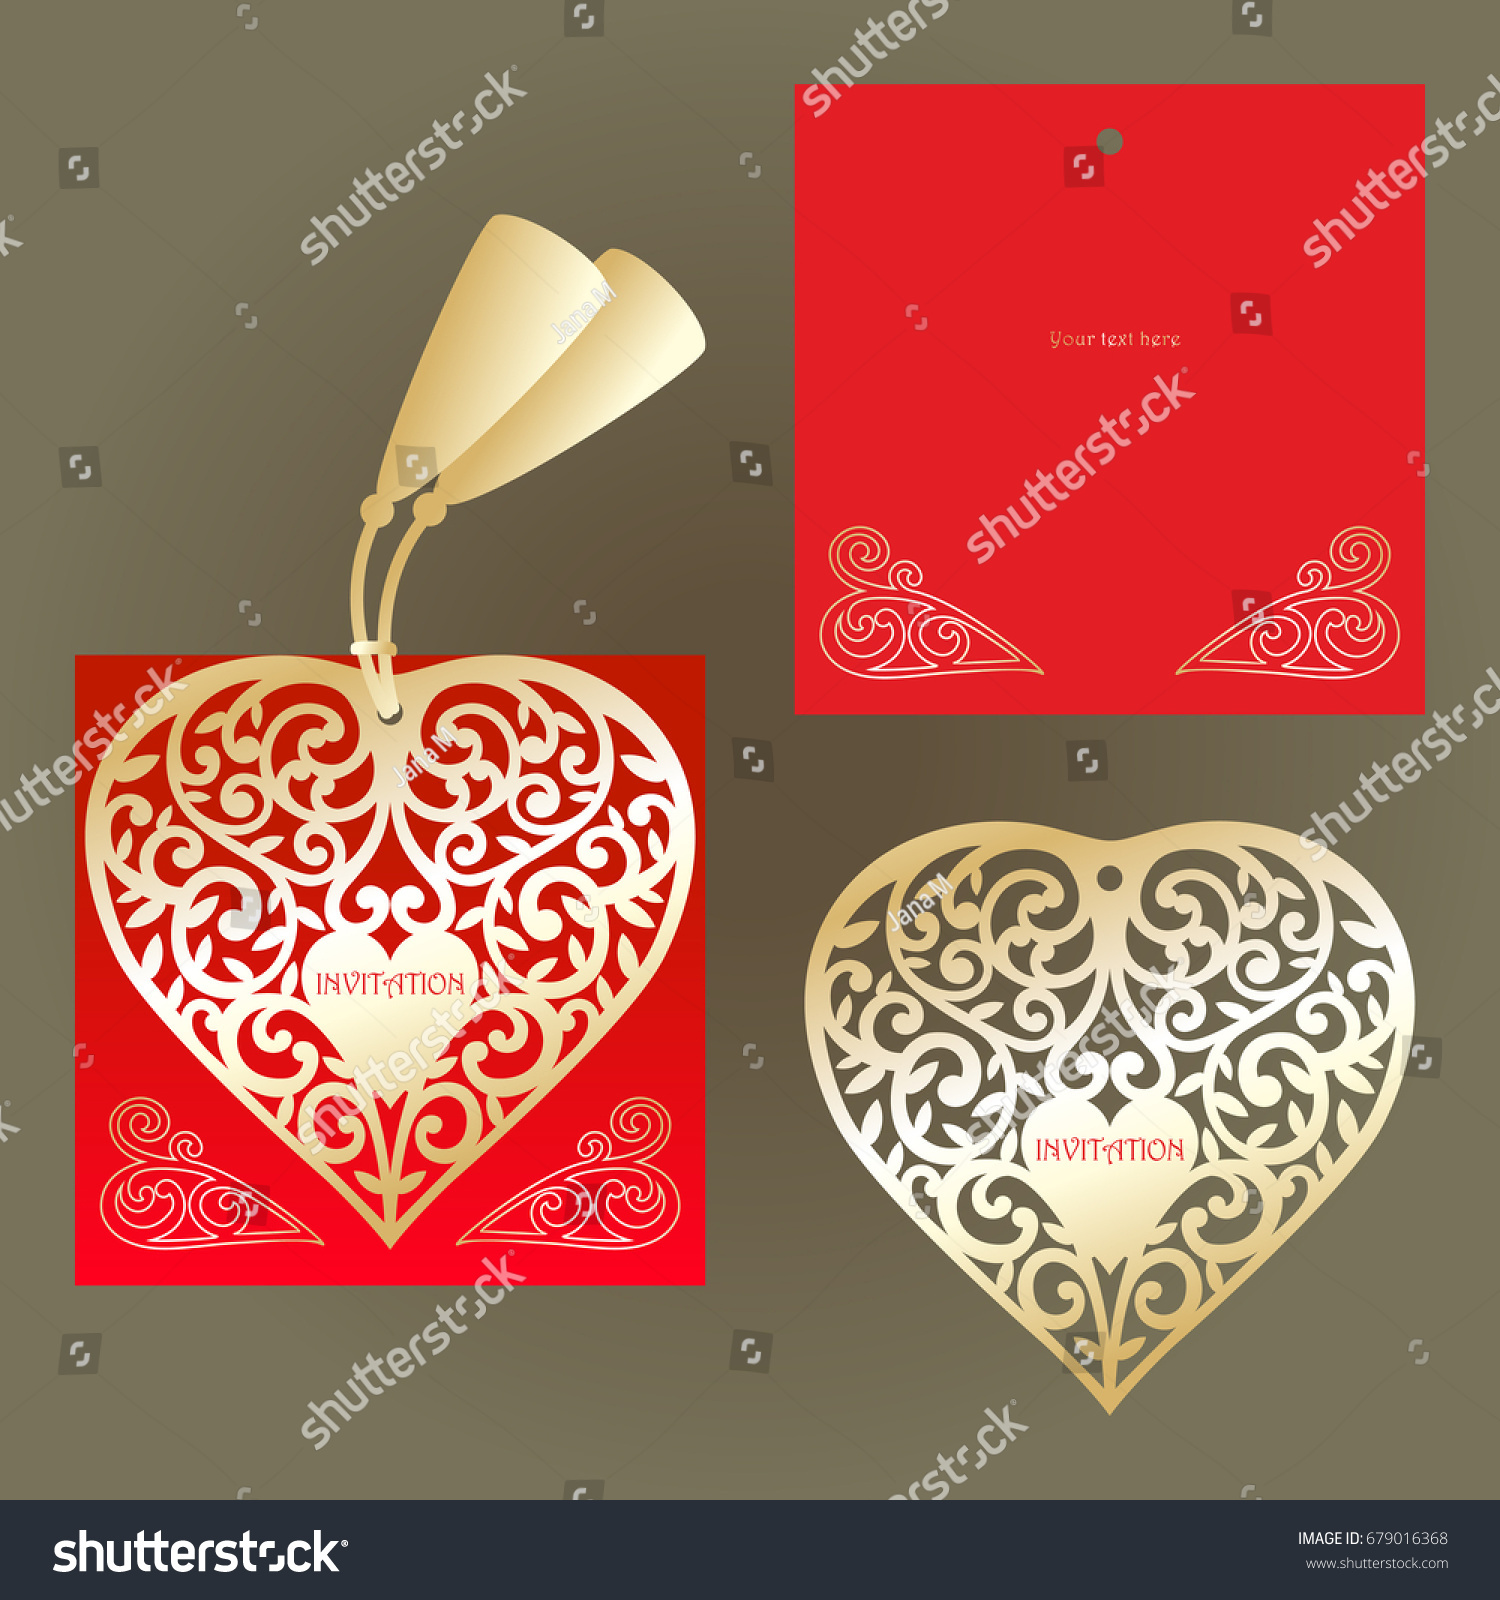 Red Invitation Cutout Golden Heart Wedding Stock Vector (Royalty ...